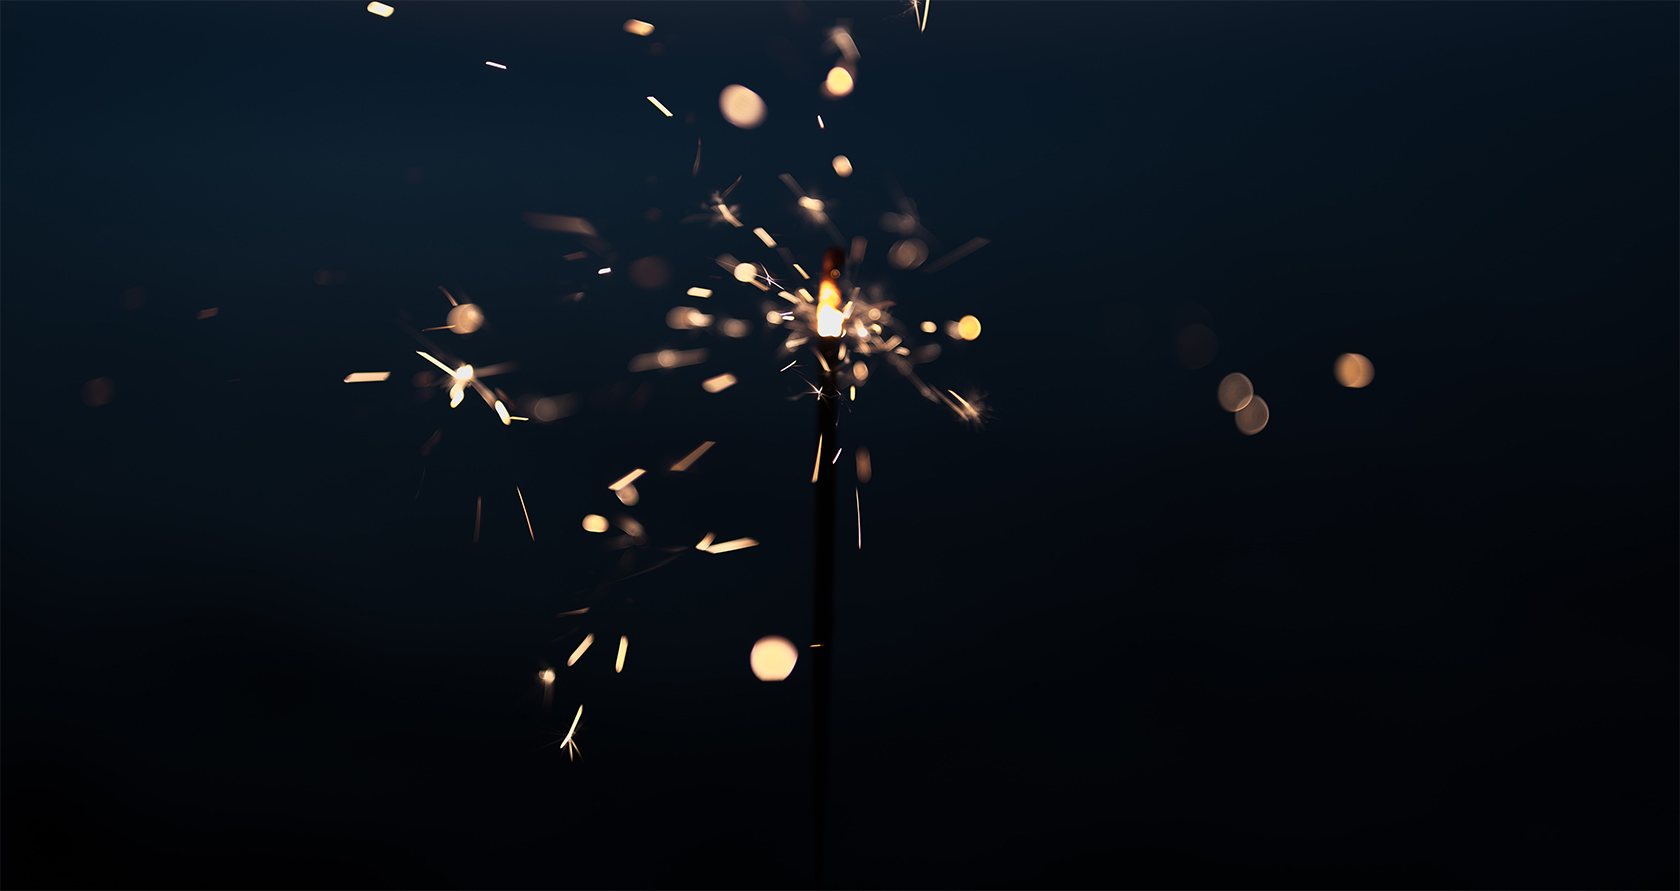 A Sparkler in the night time light up and shinning brightly